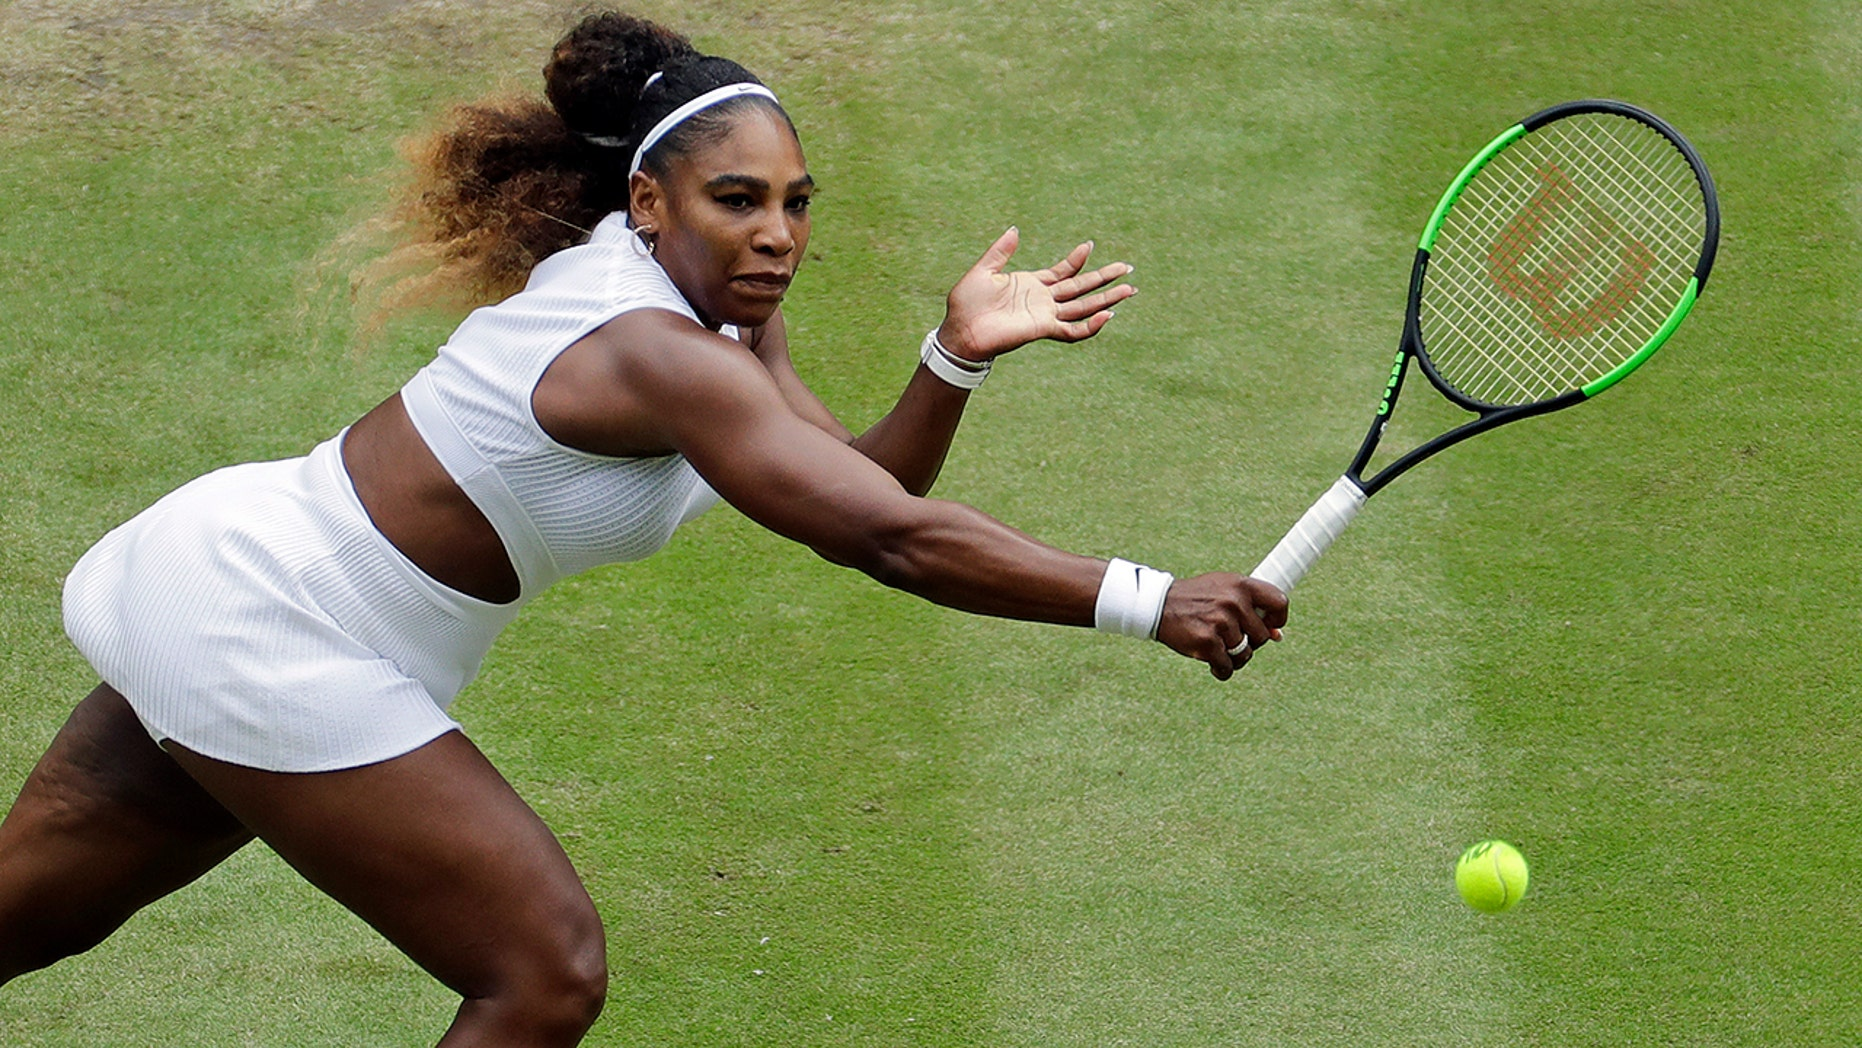 Serena Williams and Simona Halep play to stay calm in Wimbledon final